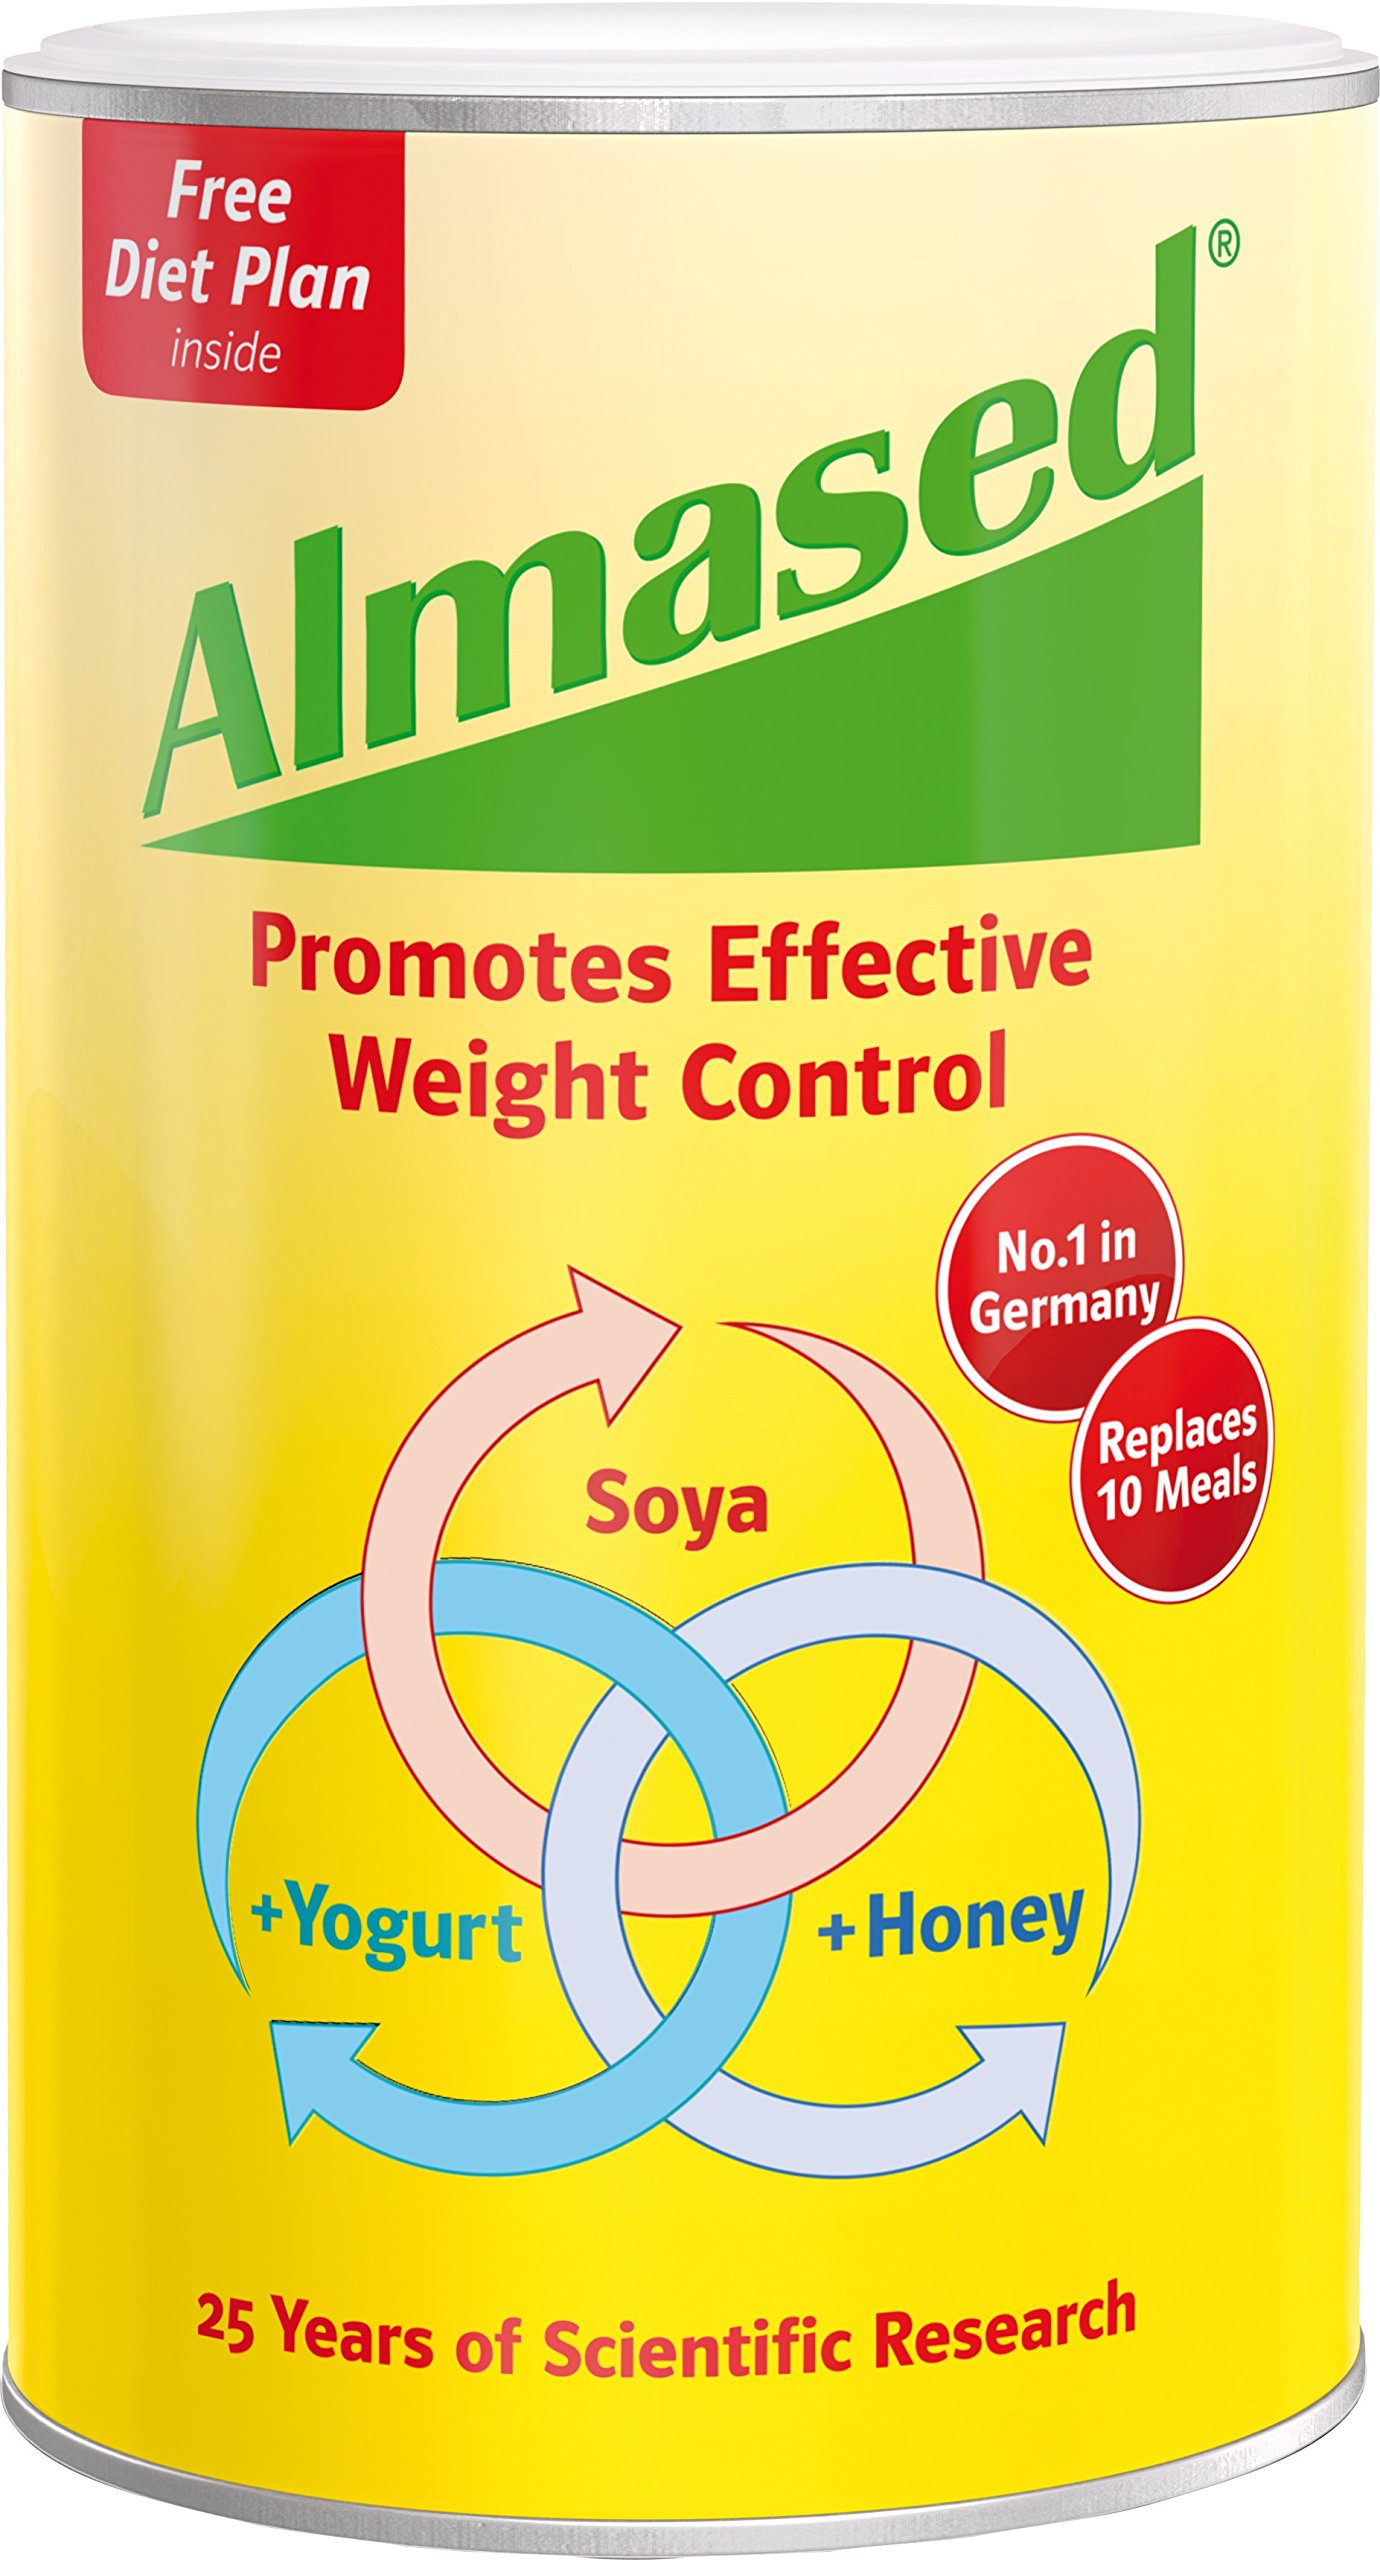 Almased® - Multi Protein Powder - Supports Weight Loss, Optimal Health and Maximum Energy, 17.6 oz